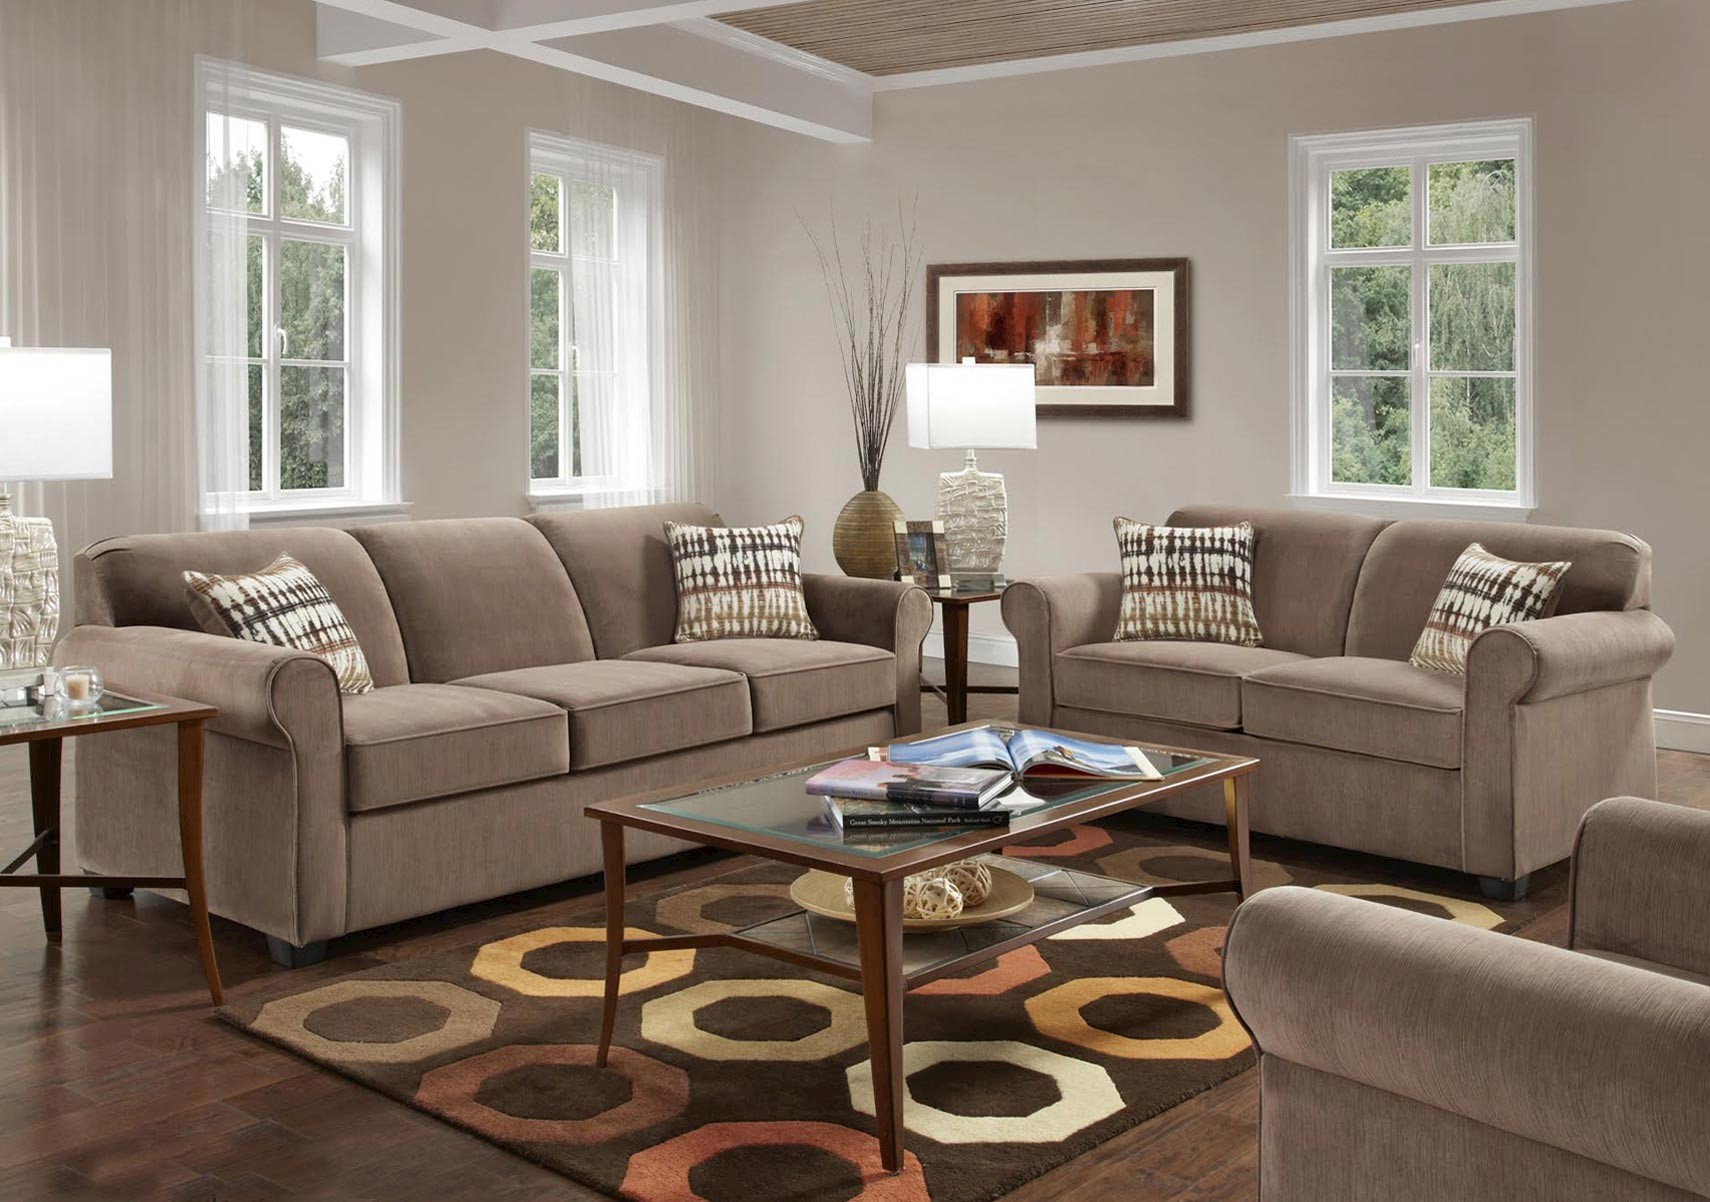 Lacks | Salem 2-Pc Living Room Set